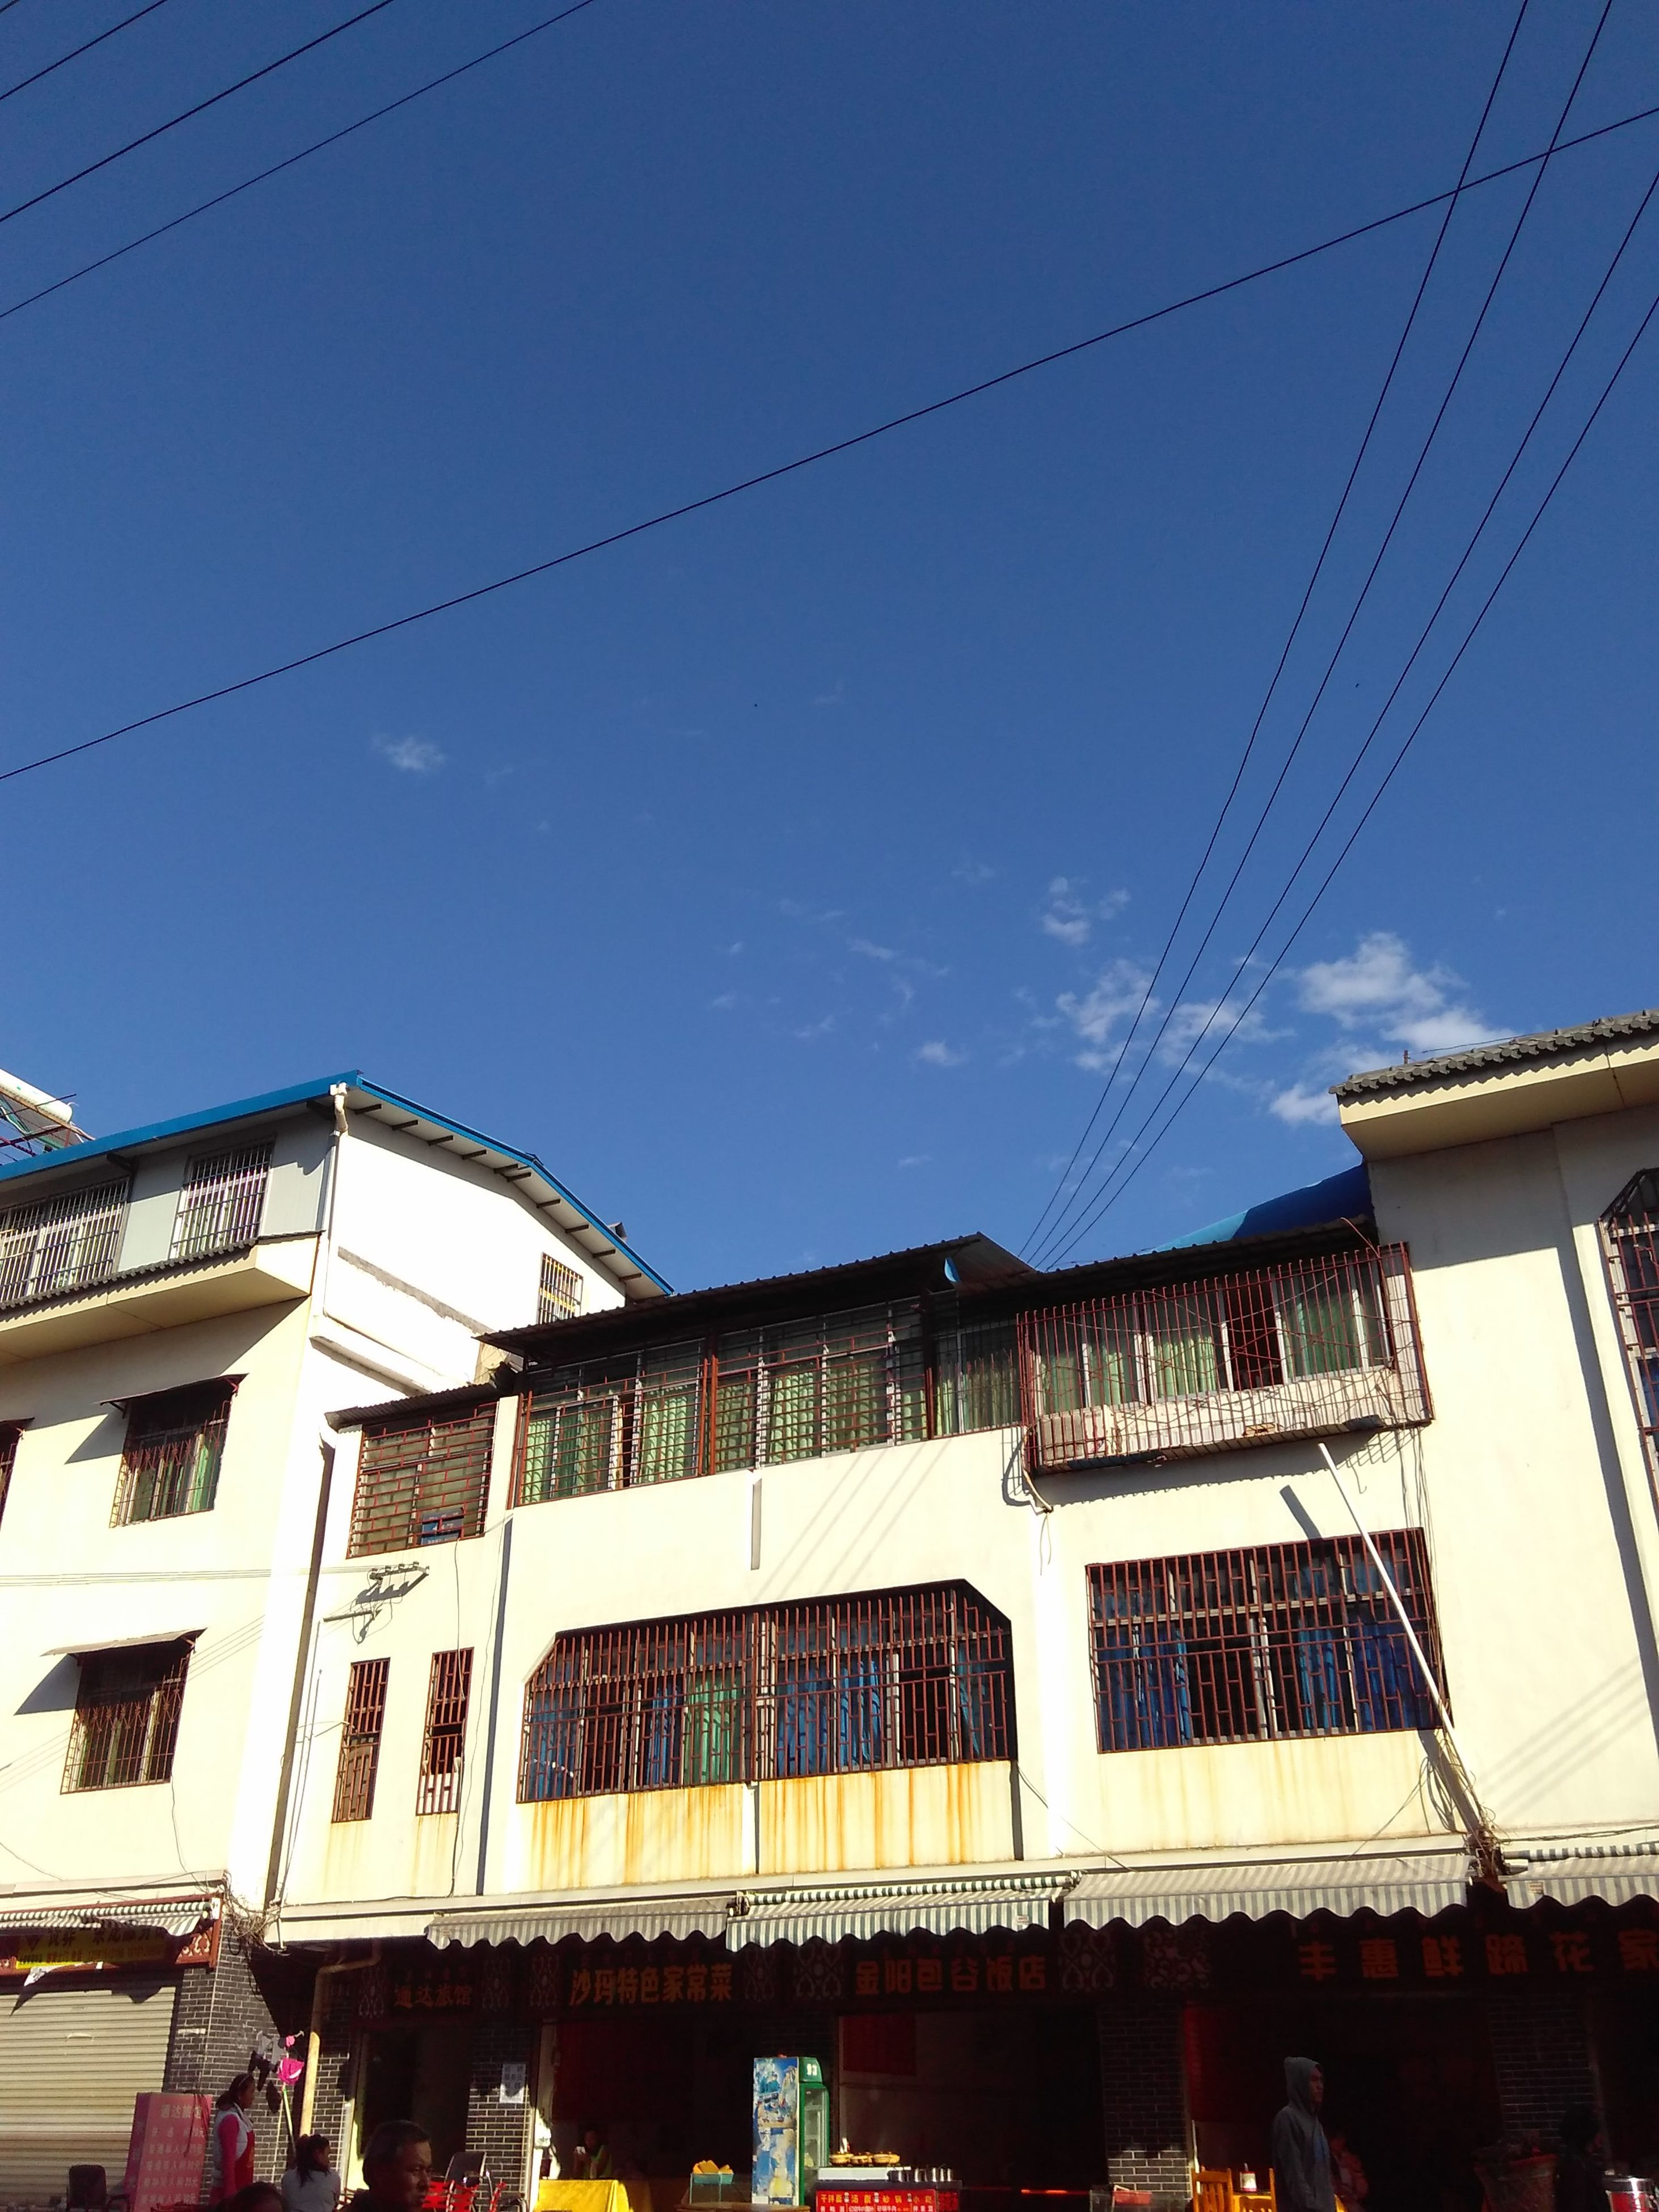 building exterior, architecture, built structure, low angle view, power line, residential building, cable, window, residential structure, building, house, clear sky, sky, blue, hanging, day, outdoors, city, no people, electricity